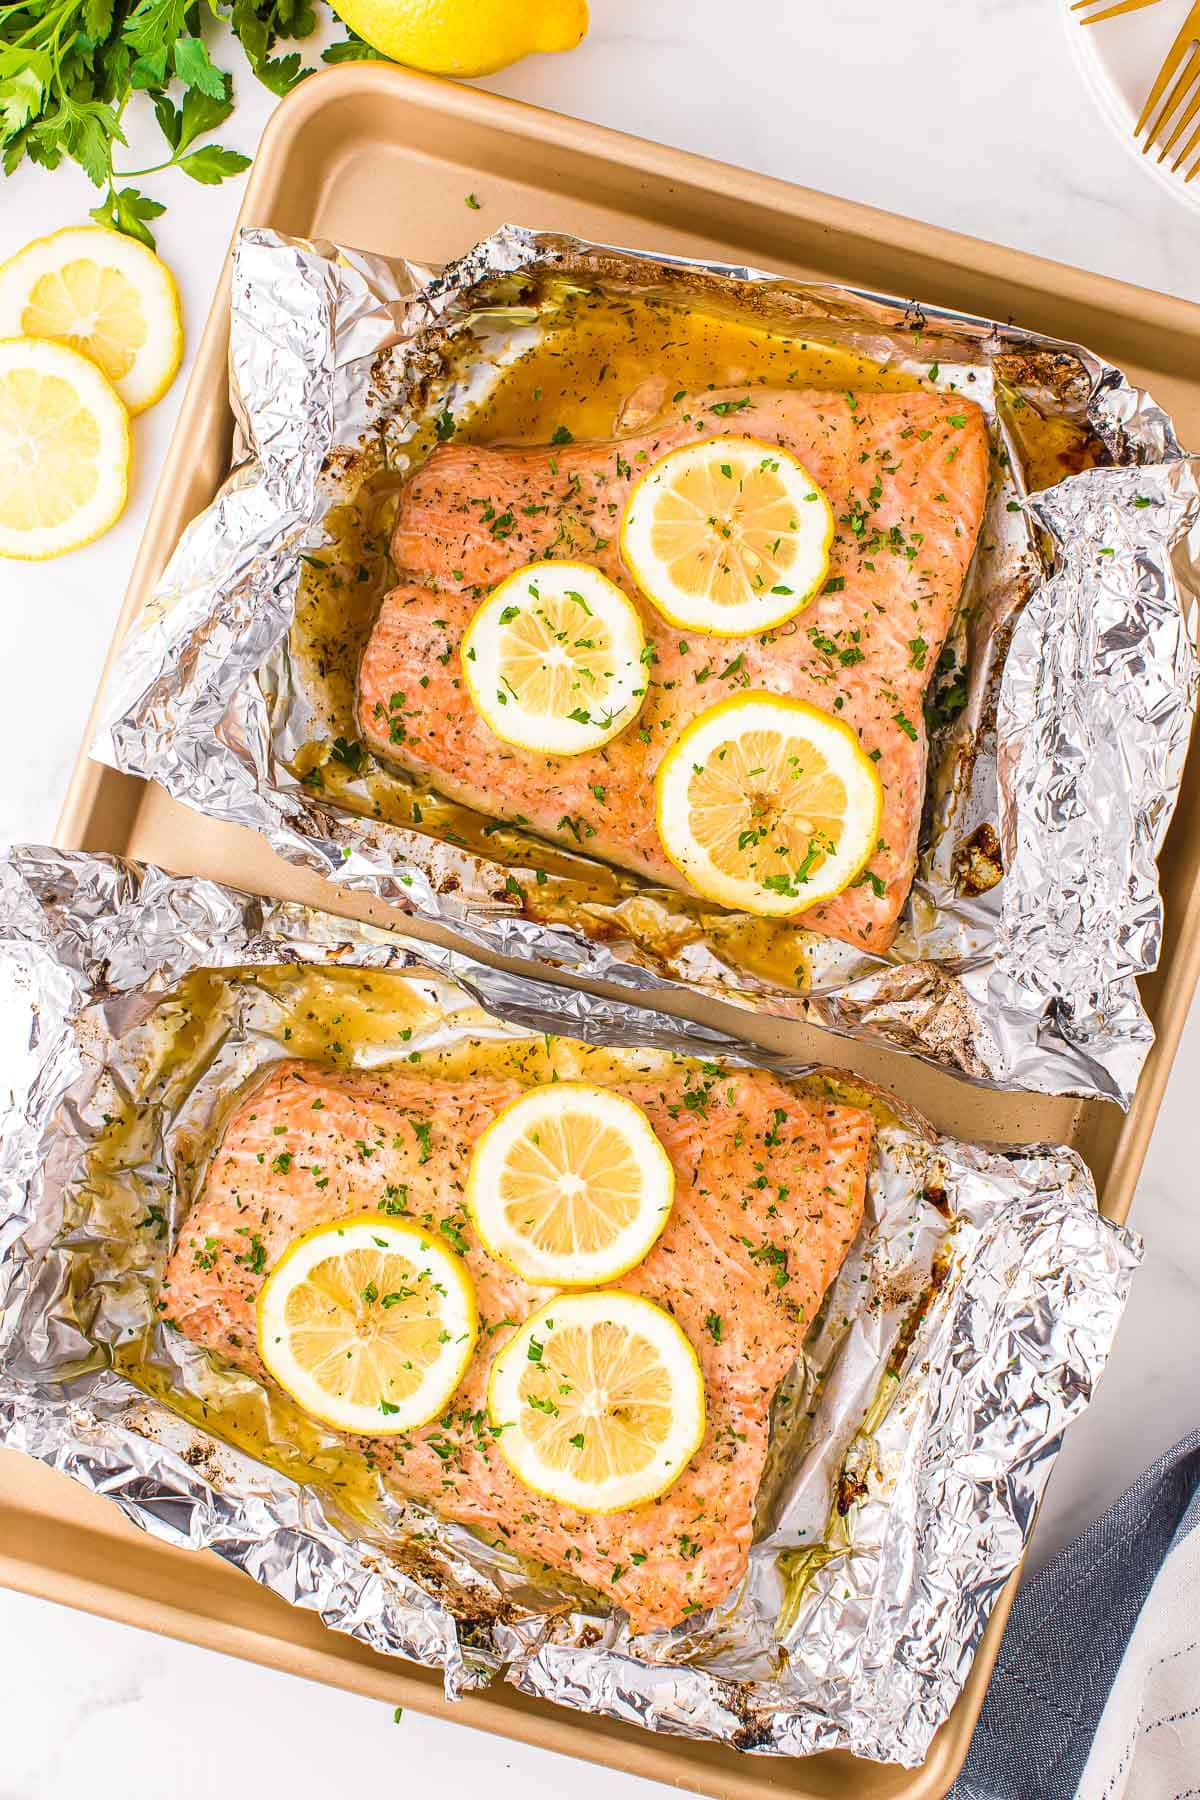 two large salmon filets baked in foil sitting on gold sheet pan topped with lemon slices and fresh minced parsley.